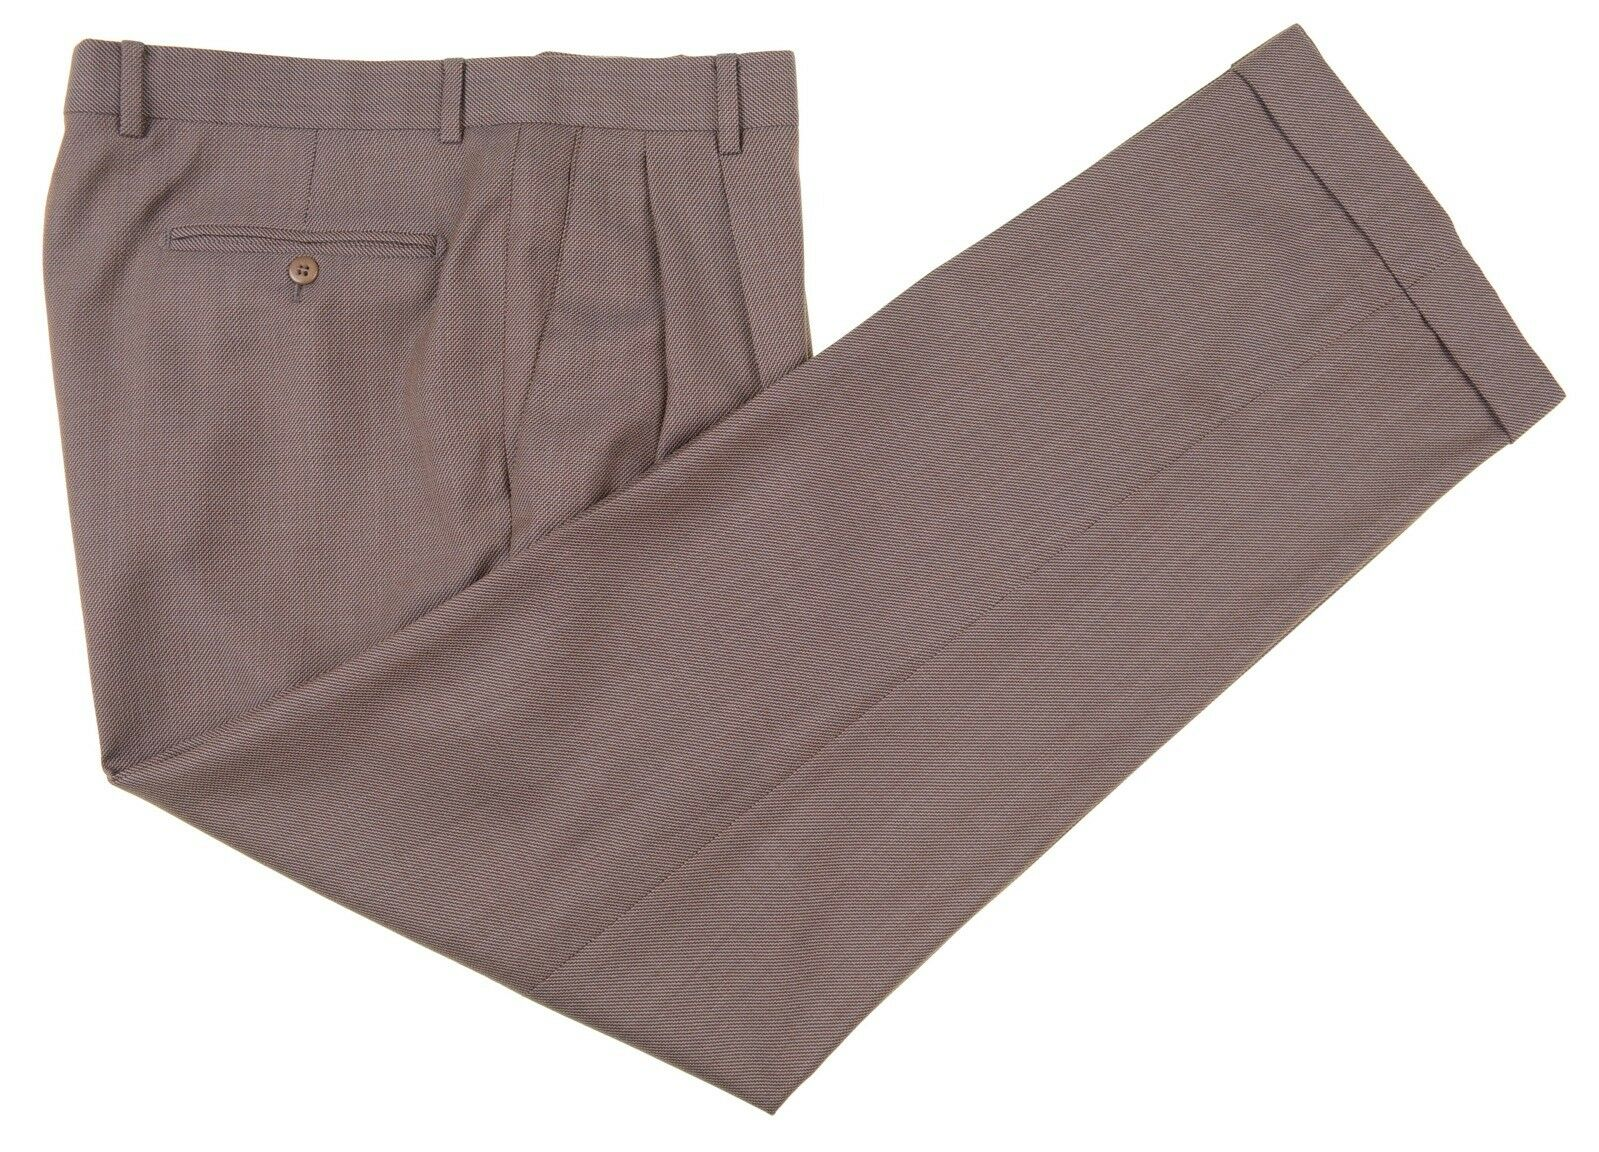 Zanella Bennett Made in ITALY Brown Woven Wool Dress Pants 36 x 31